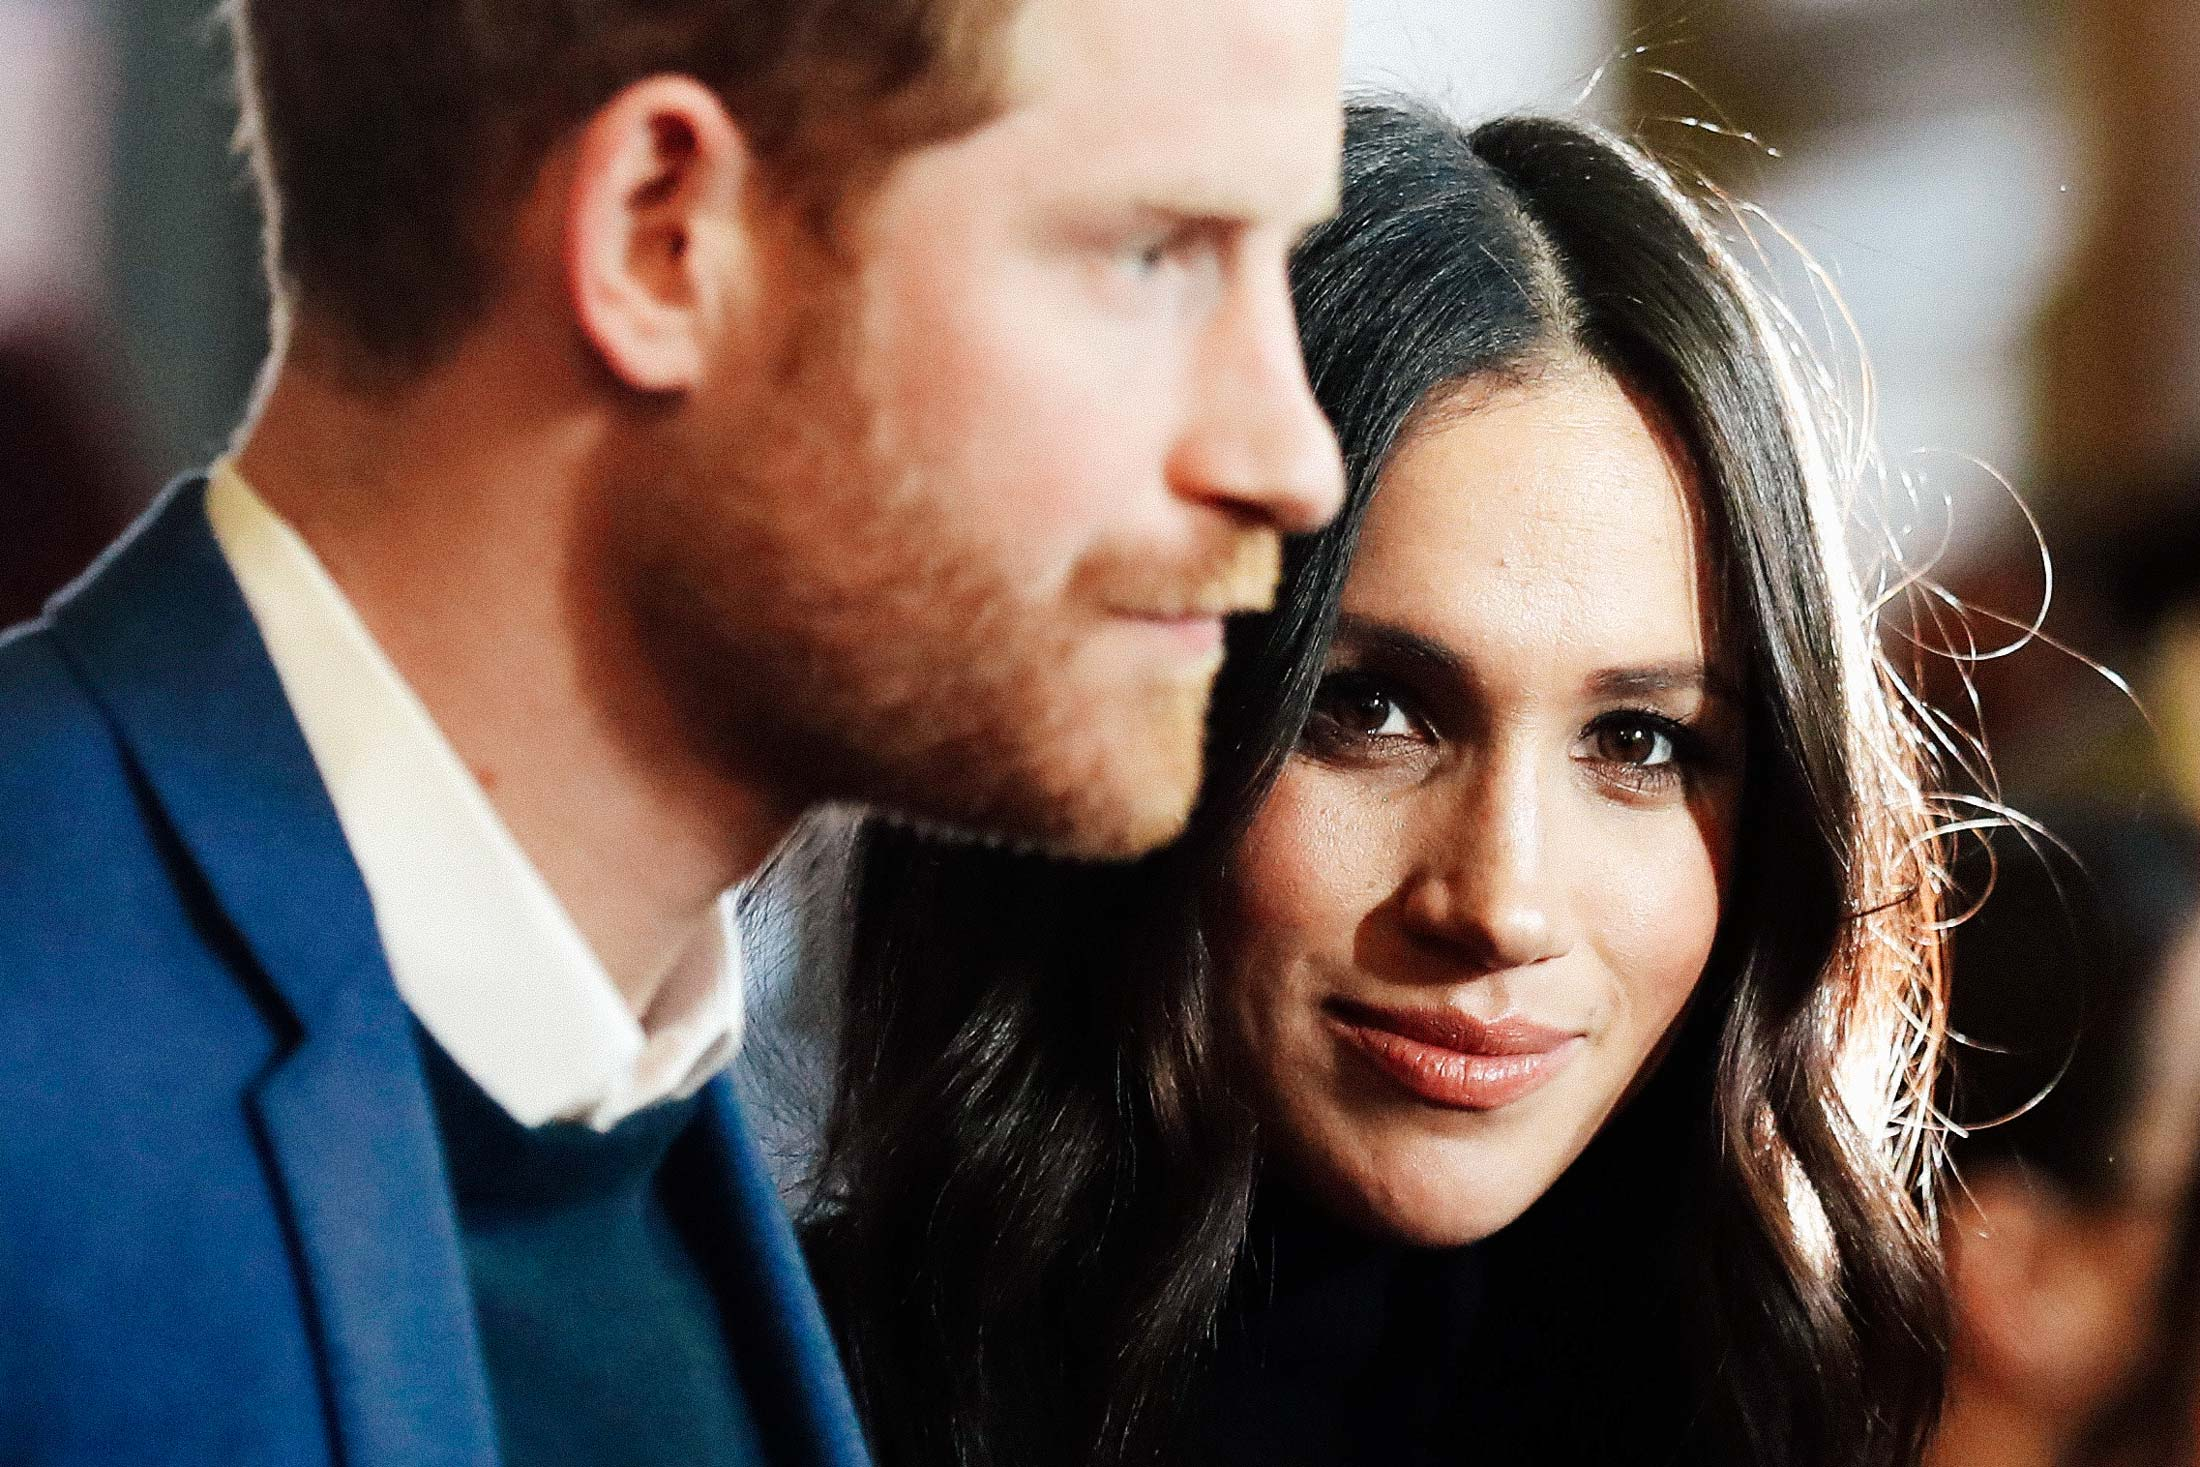 Prince Harry and Meghan Markle attend a reception at the Palace of Holyroodhouse in Edinburgh on Feb. 13.